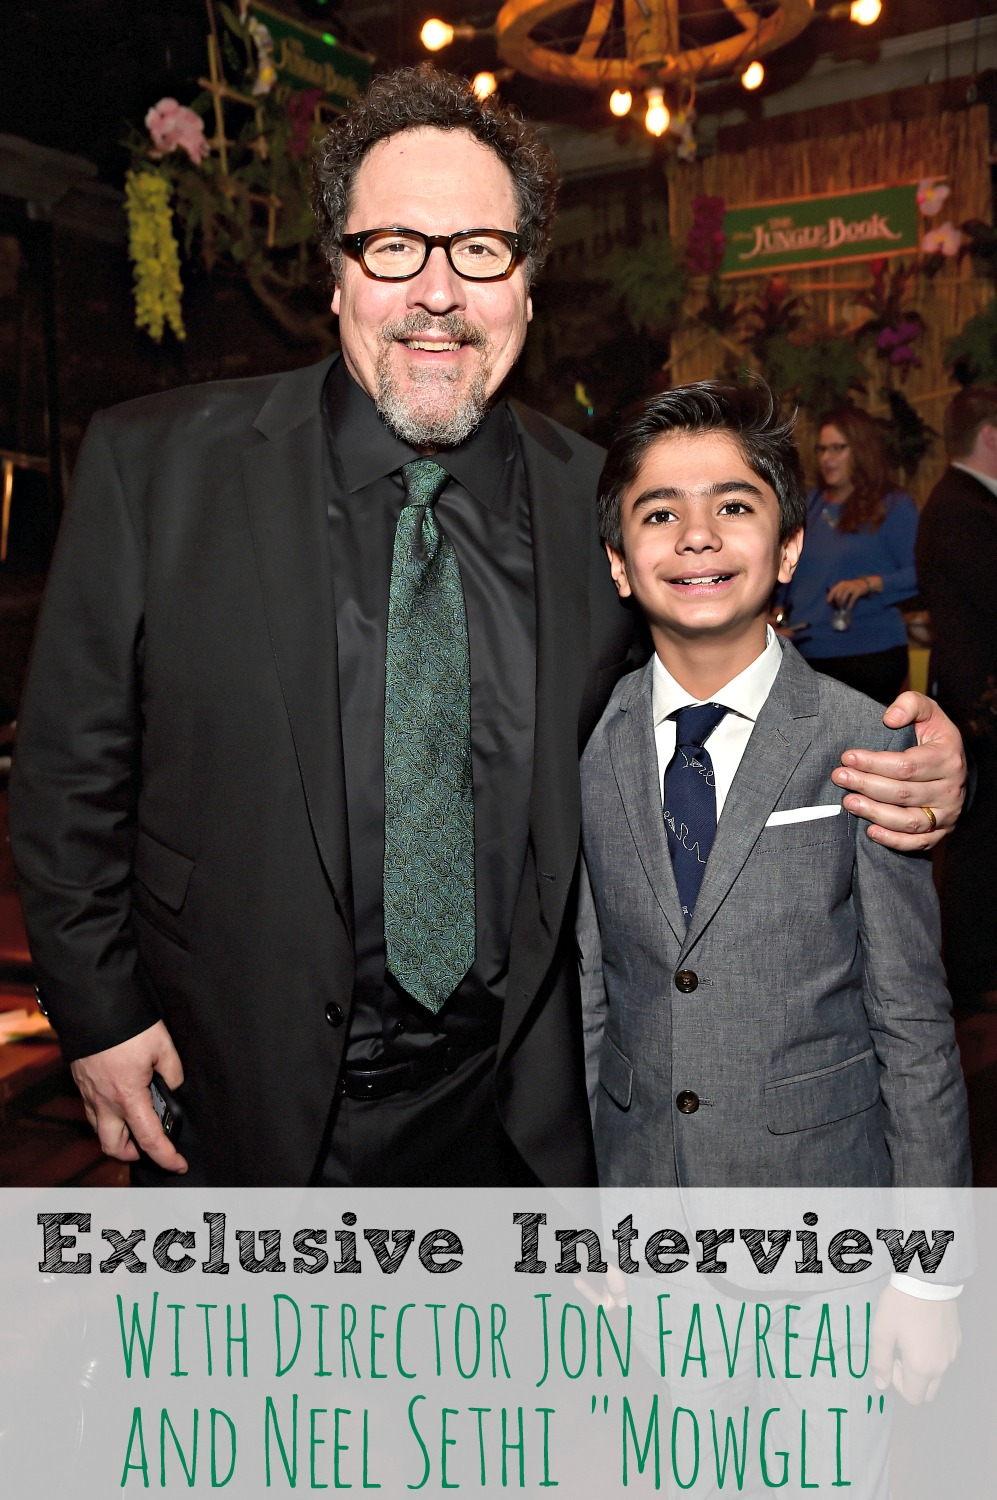 Exclusive Interview with Director Jon Favreau and Neel Sethi